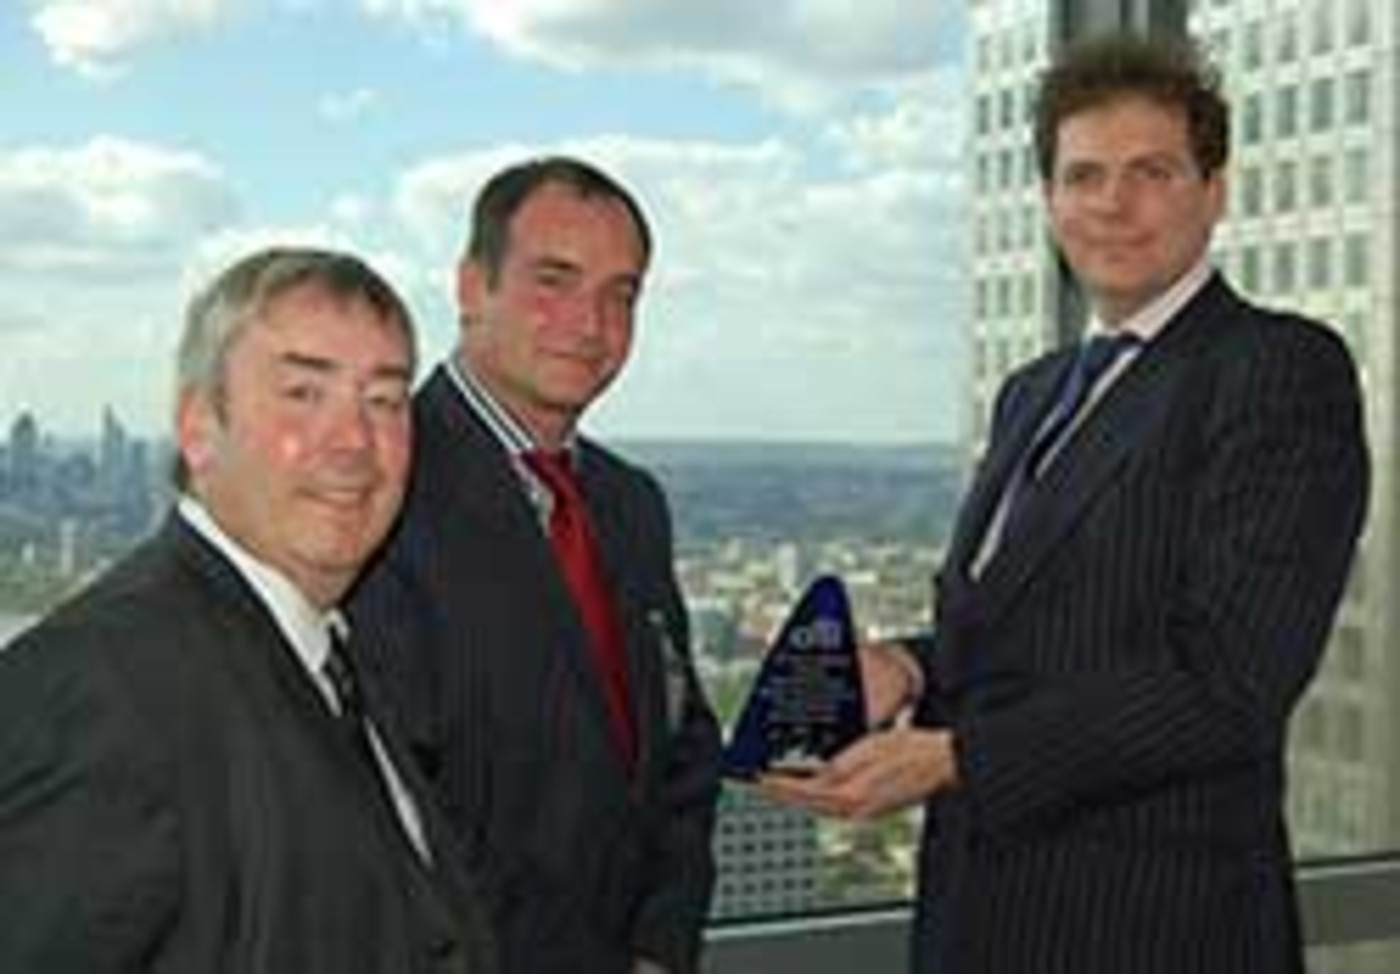 Citi global sustainable vendor of the year